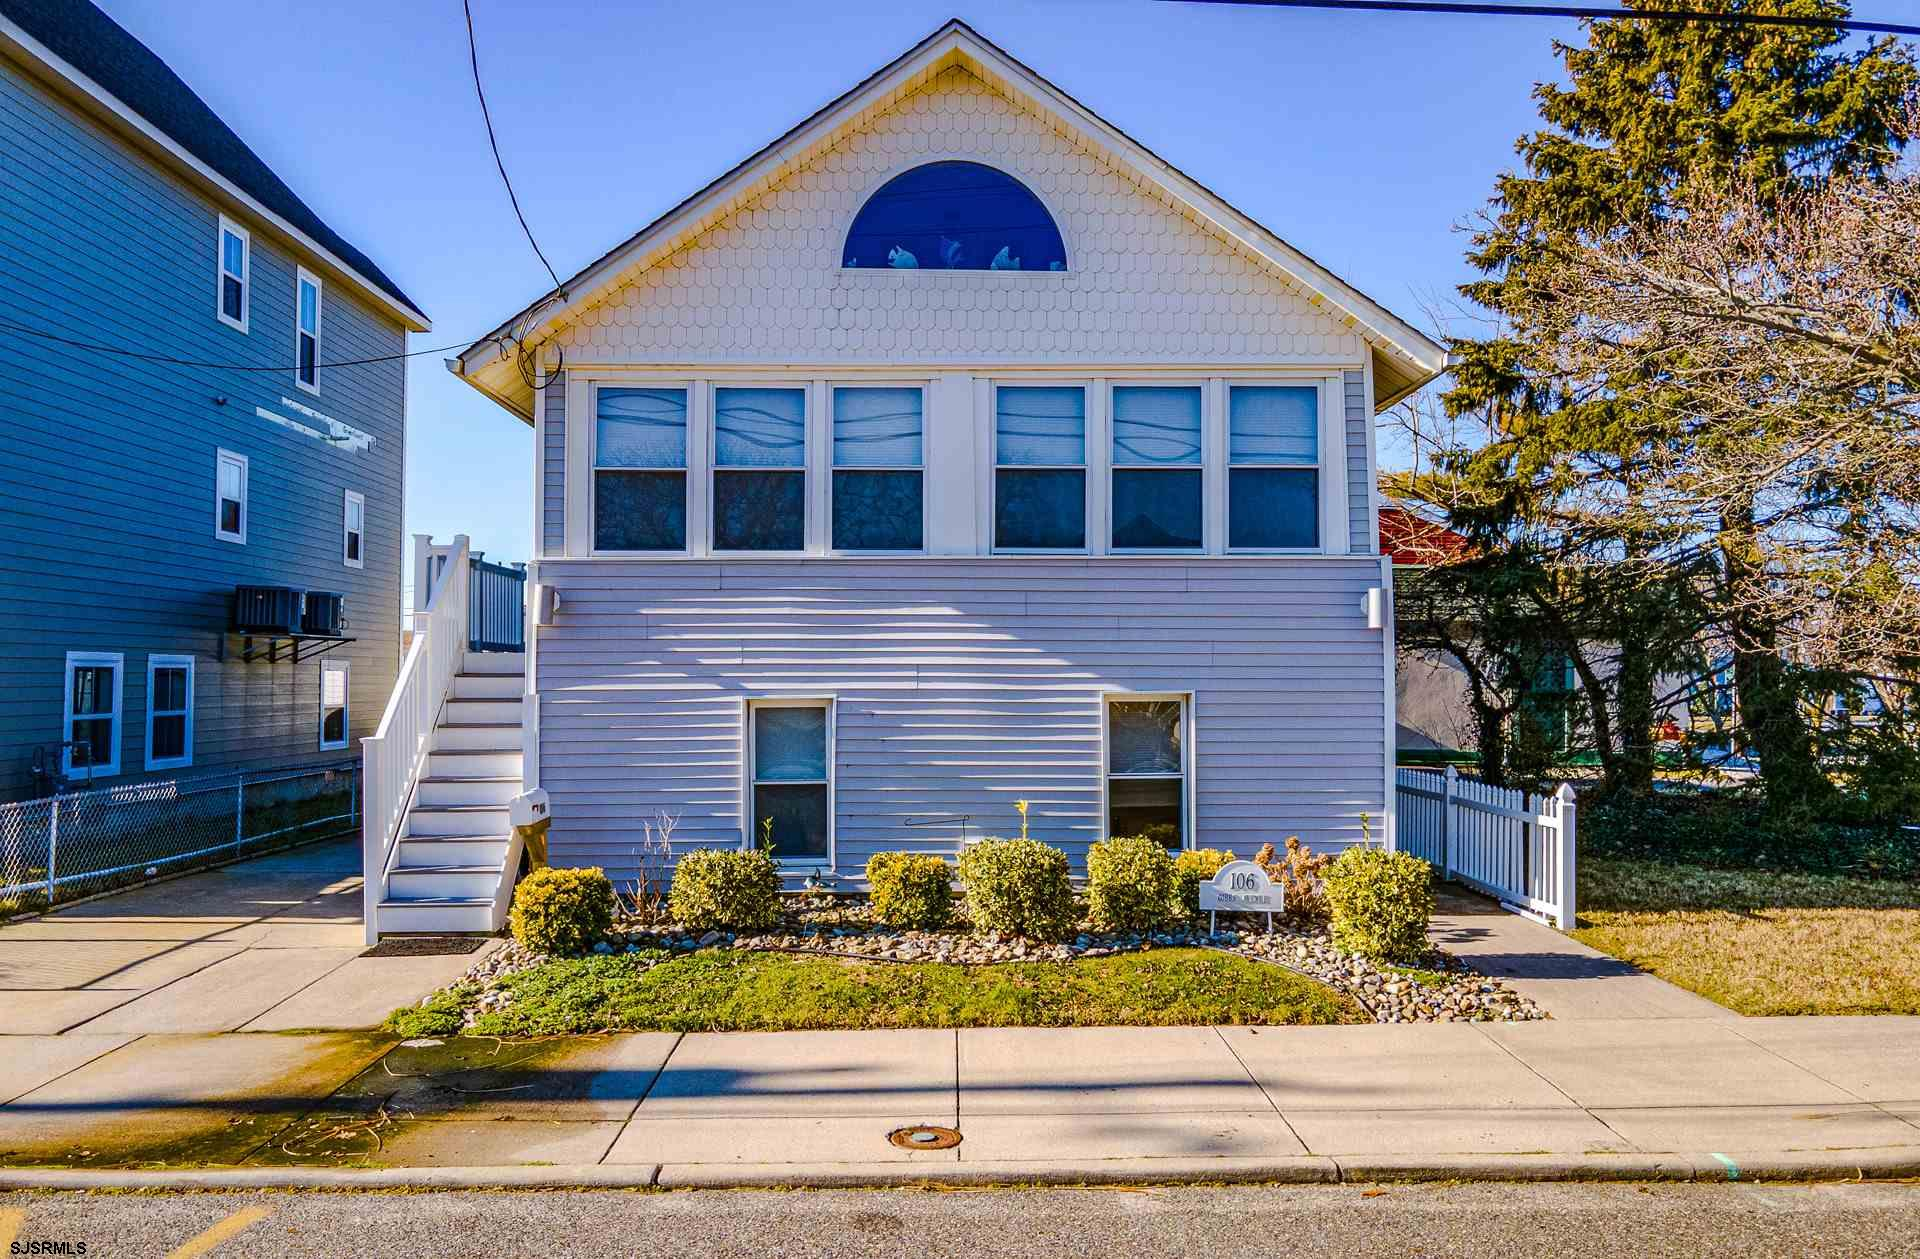 Location and Bay Views! This unique property sots in the heart of the Somers Point Bay Area. This 4